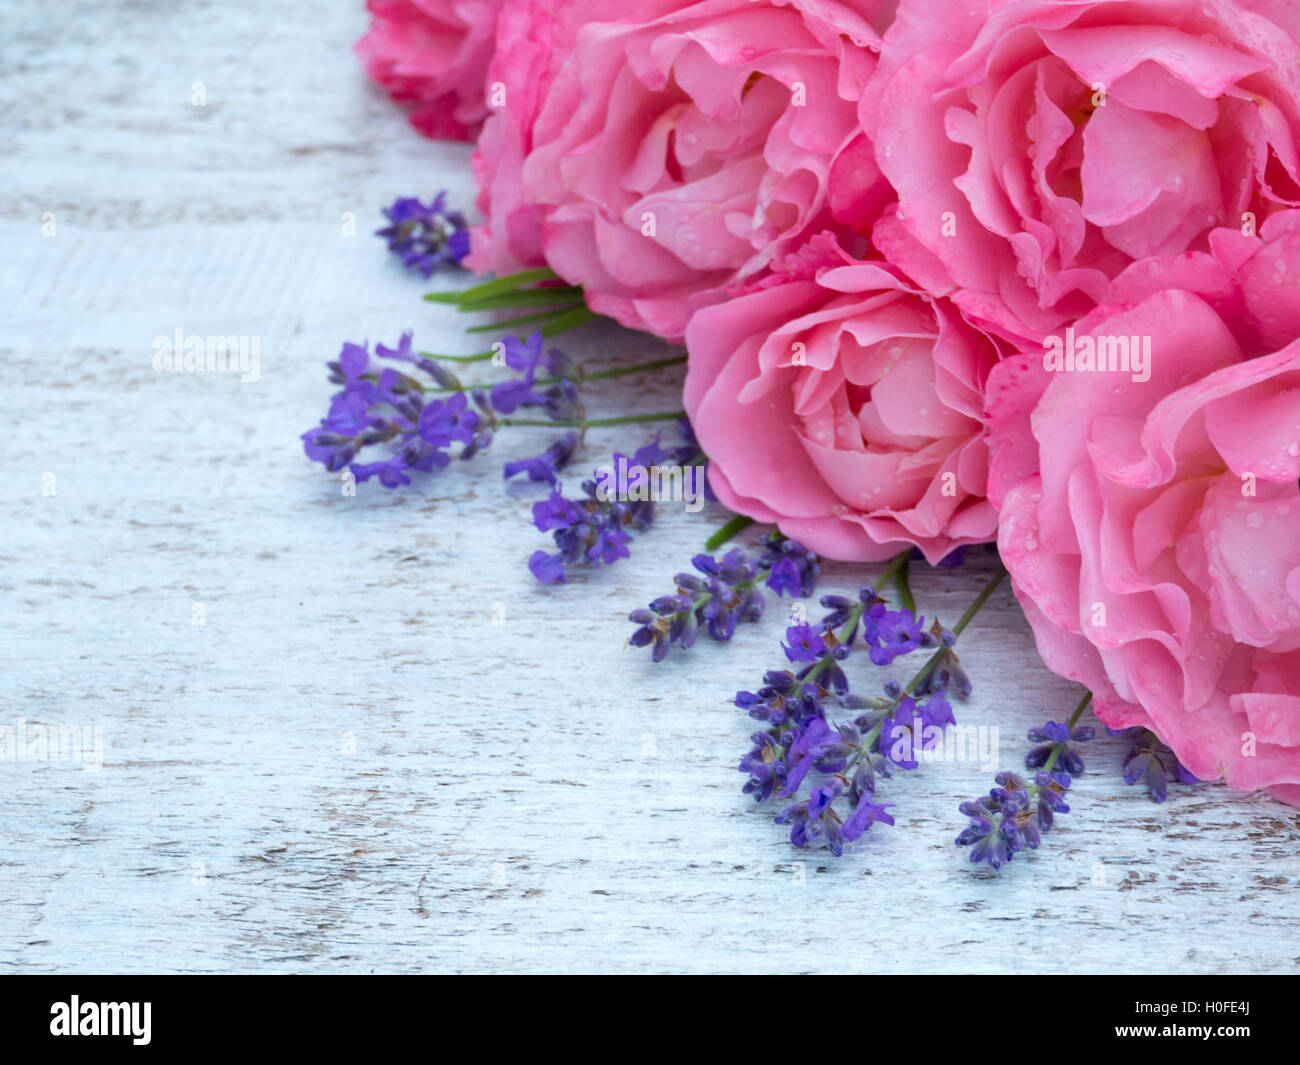 Bright Pink Roses And Lavender Bouquet On The White Painted Rustic